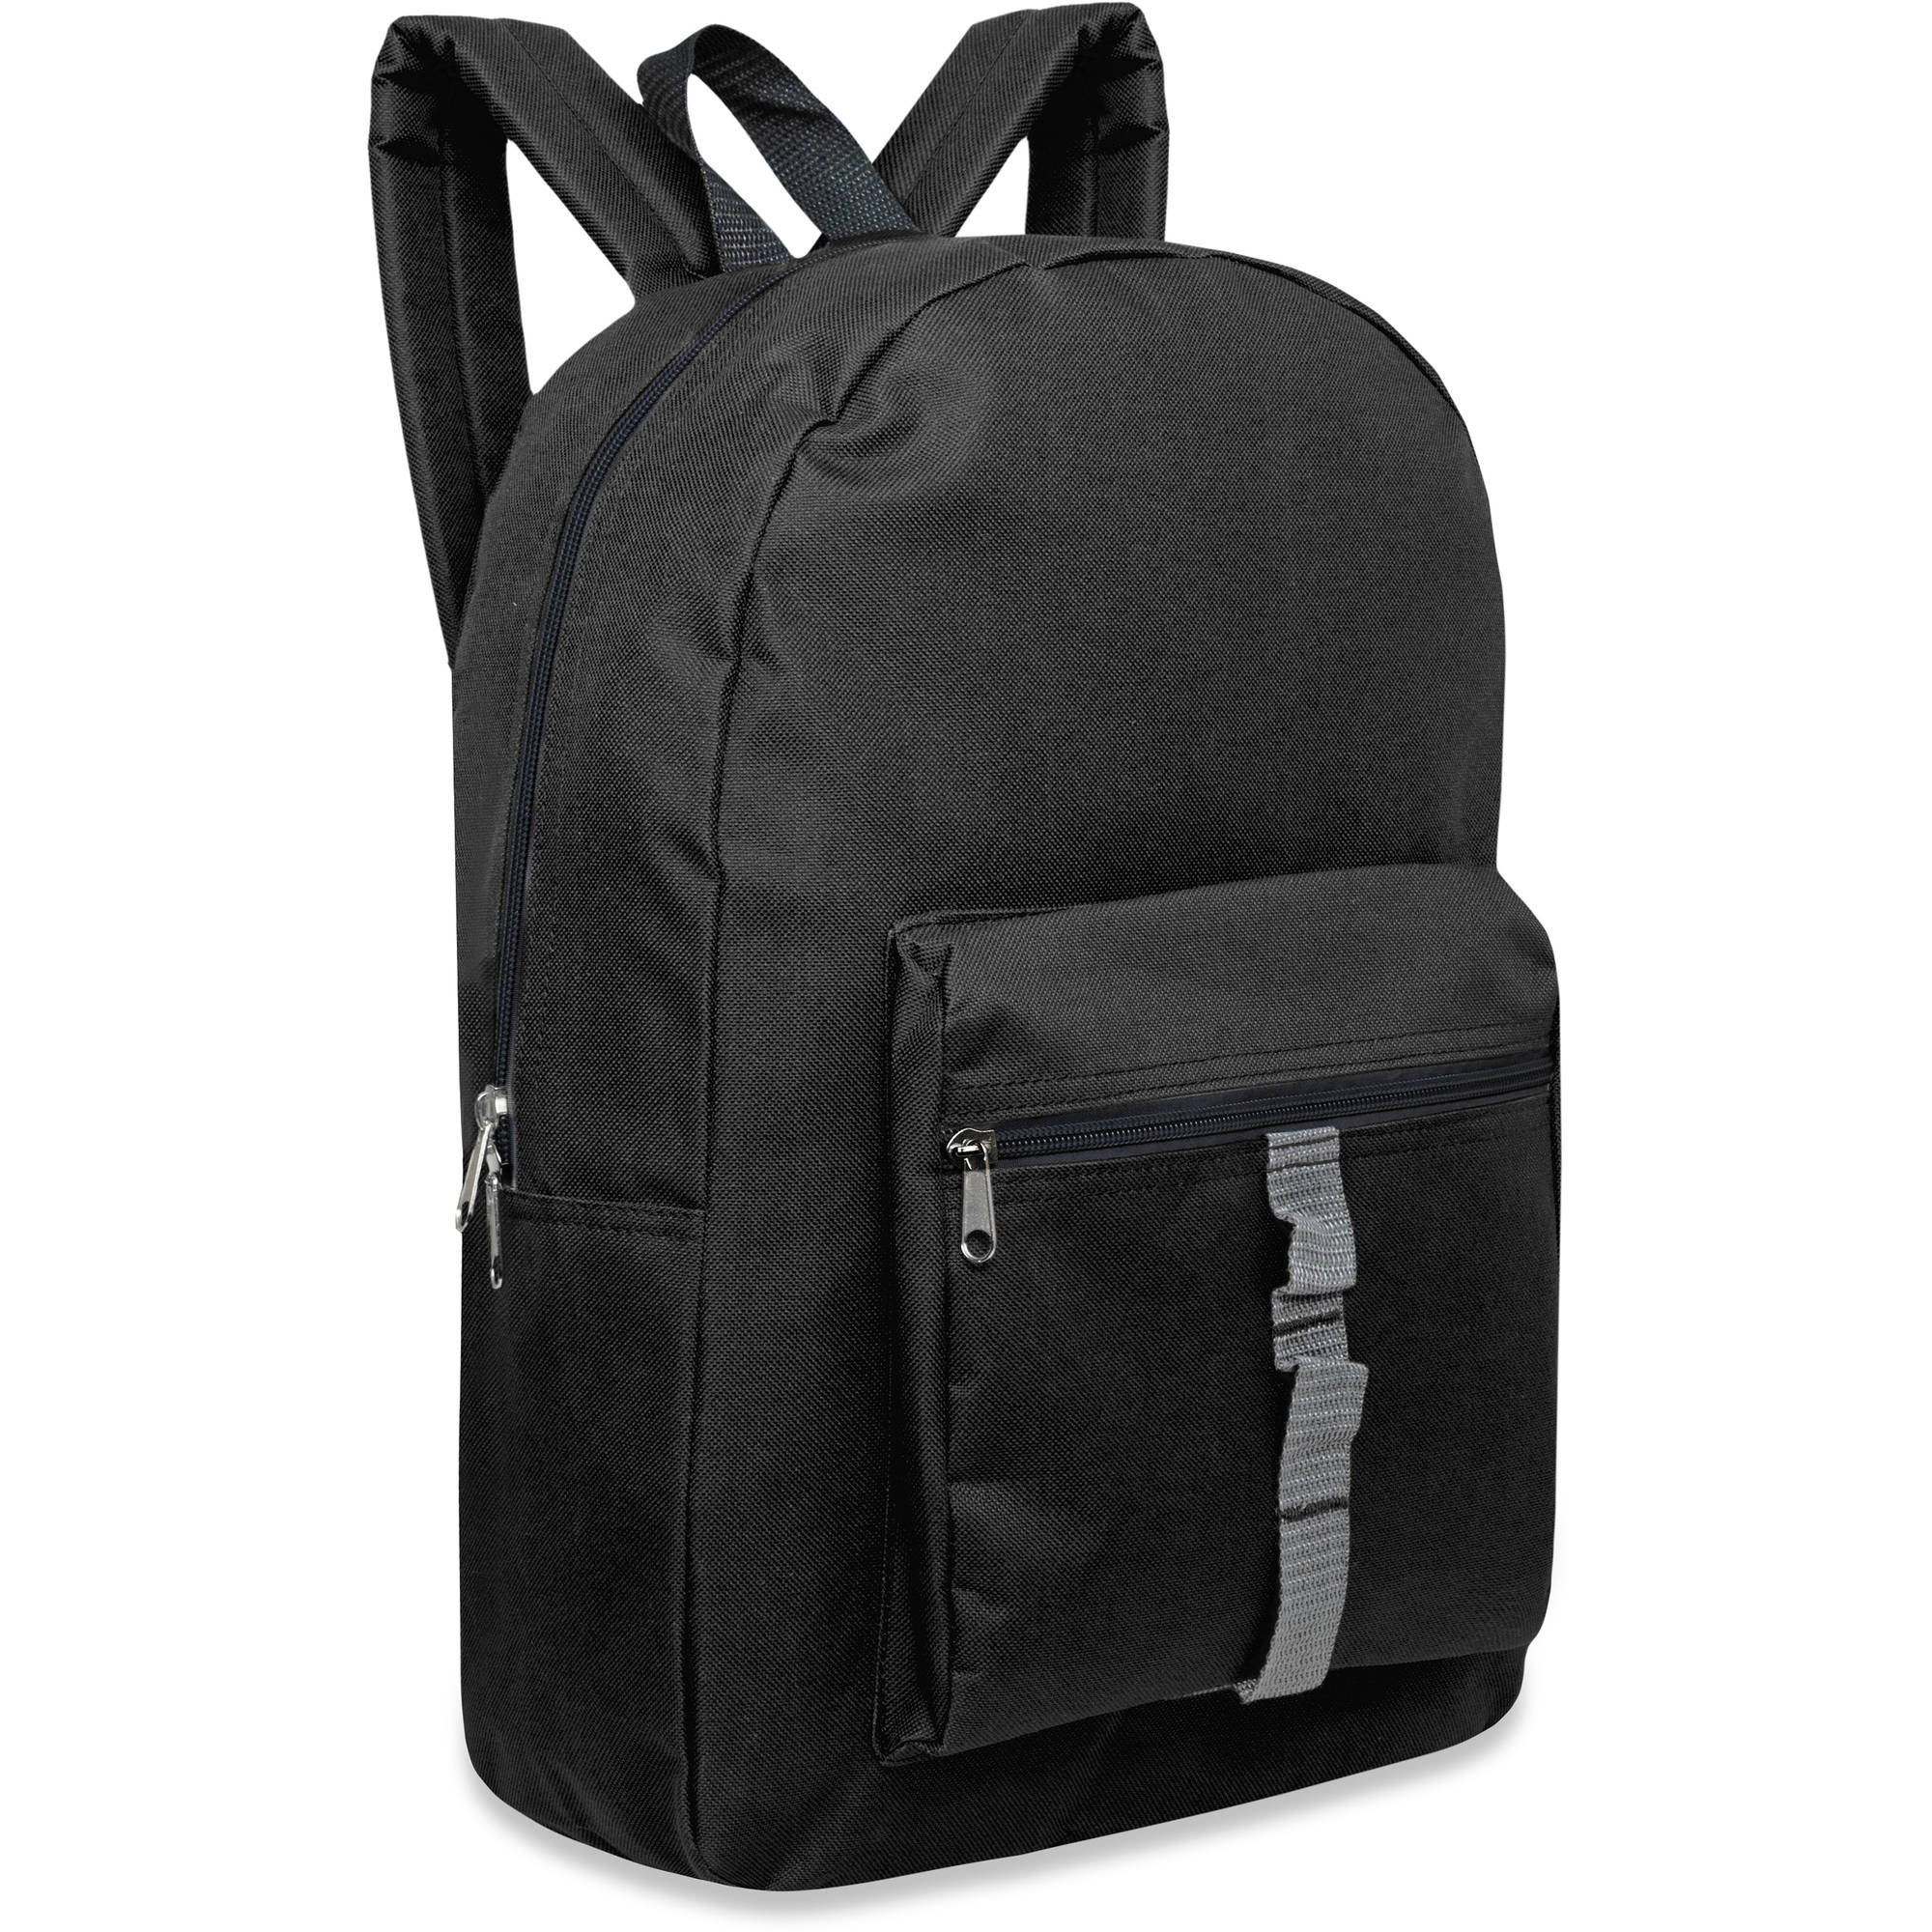 17 Inch Full Size Dome Backpack With Front Zippered Pocket